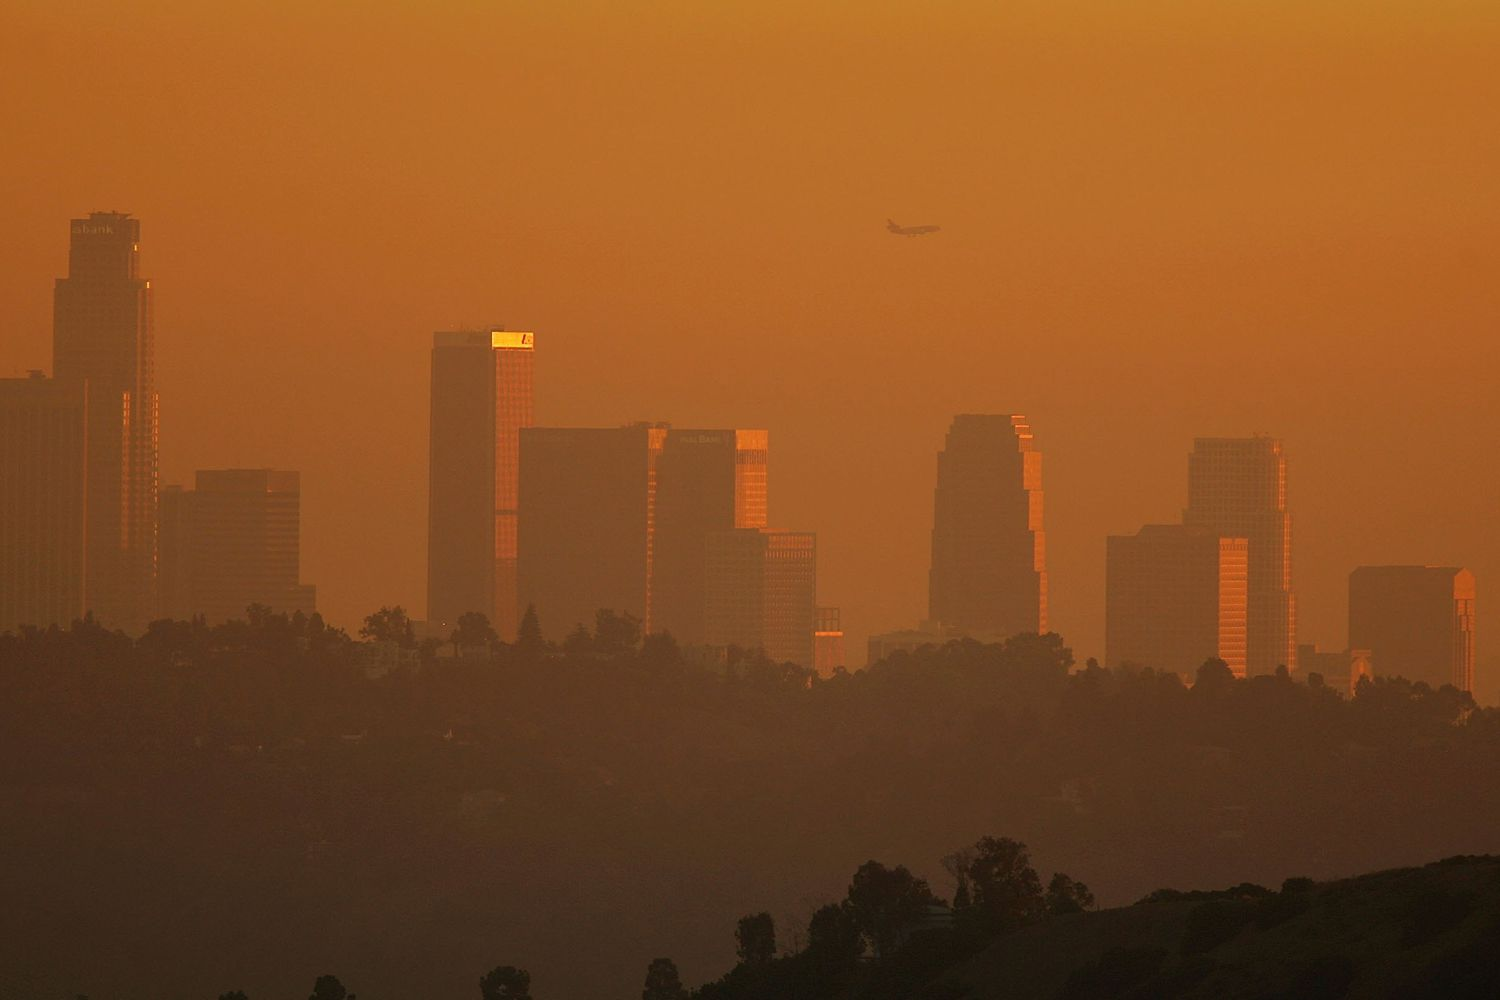 An example of how bad the smog used to be in Los Angeles